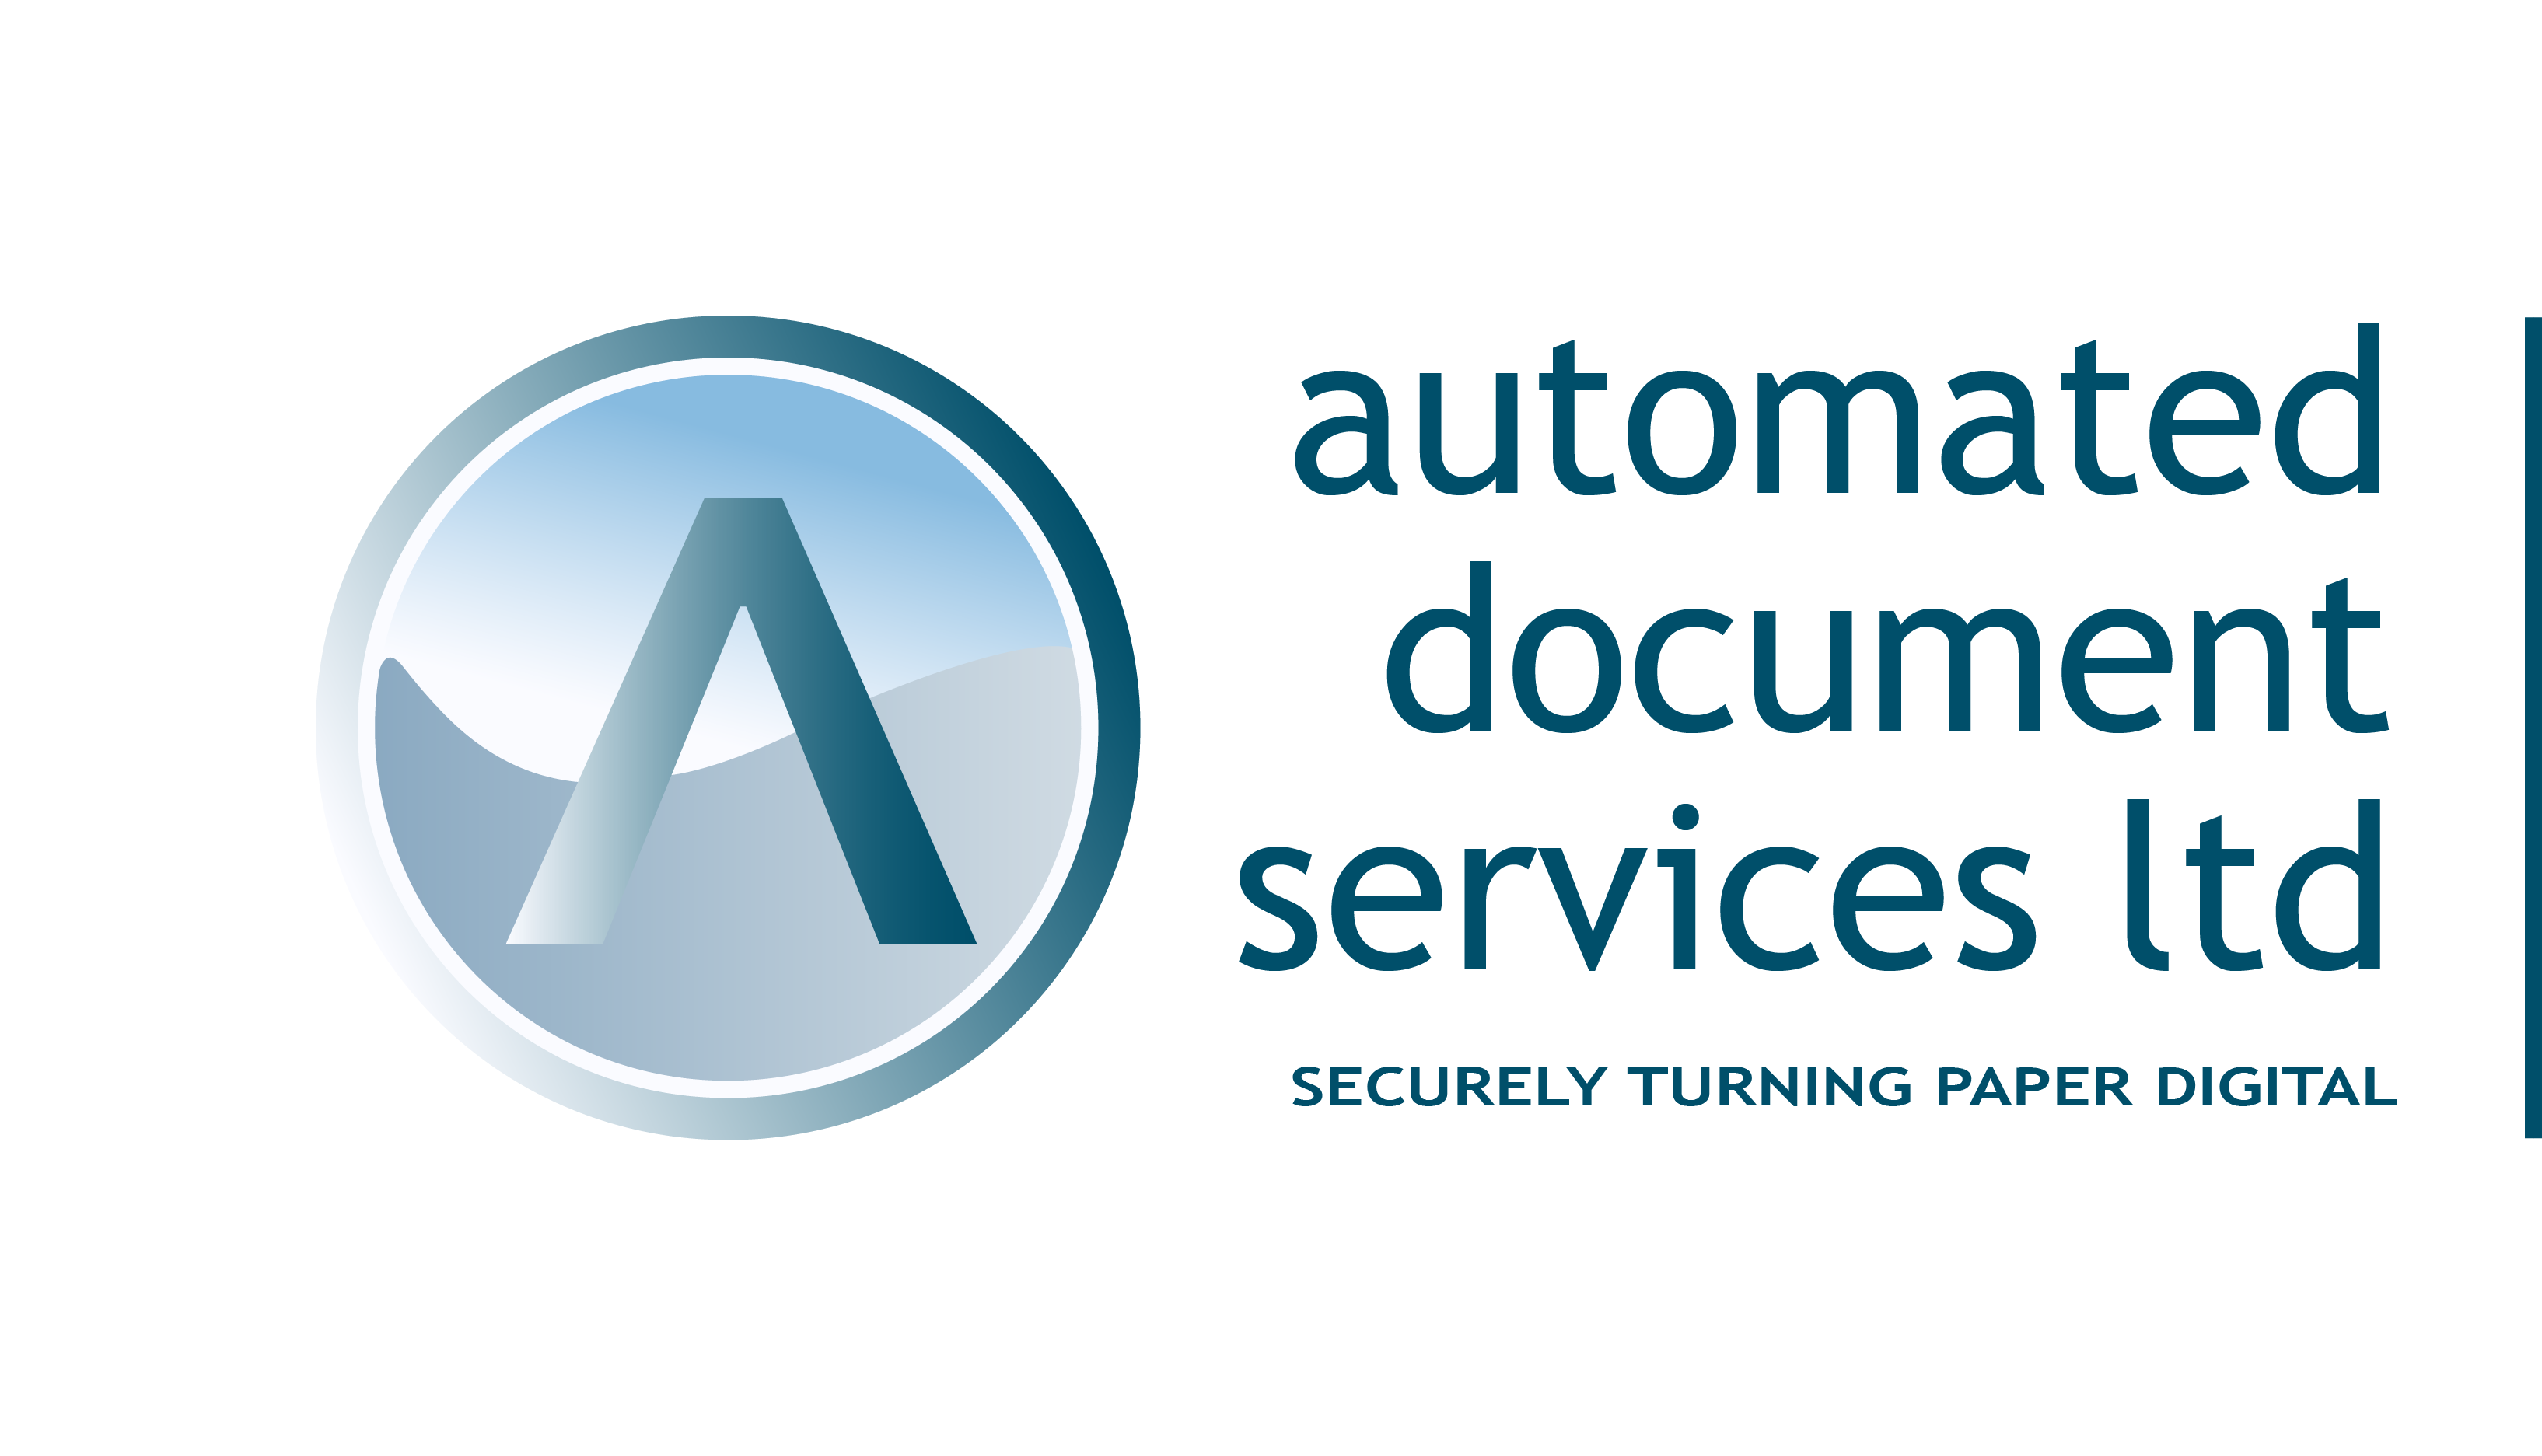 Automated Document Services Ltd